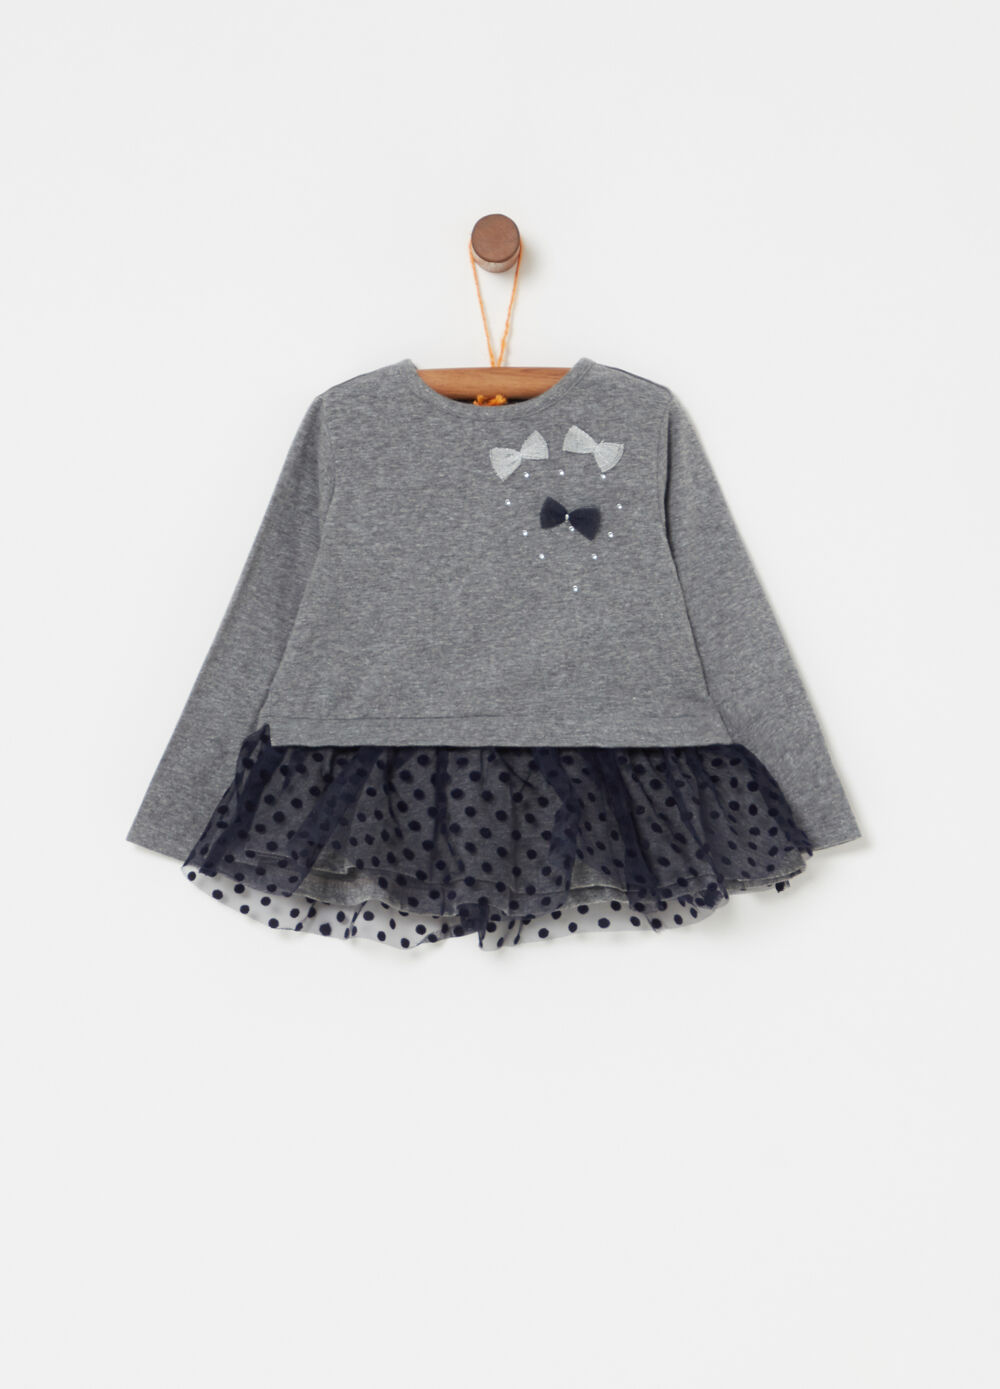 Mélange T-shirt with diamantés and polka dot tulle